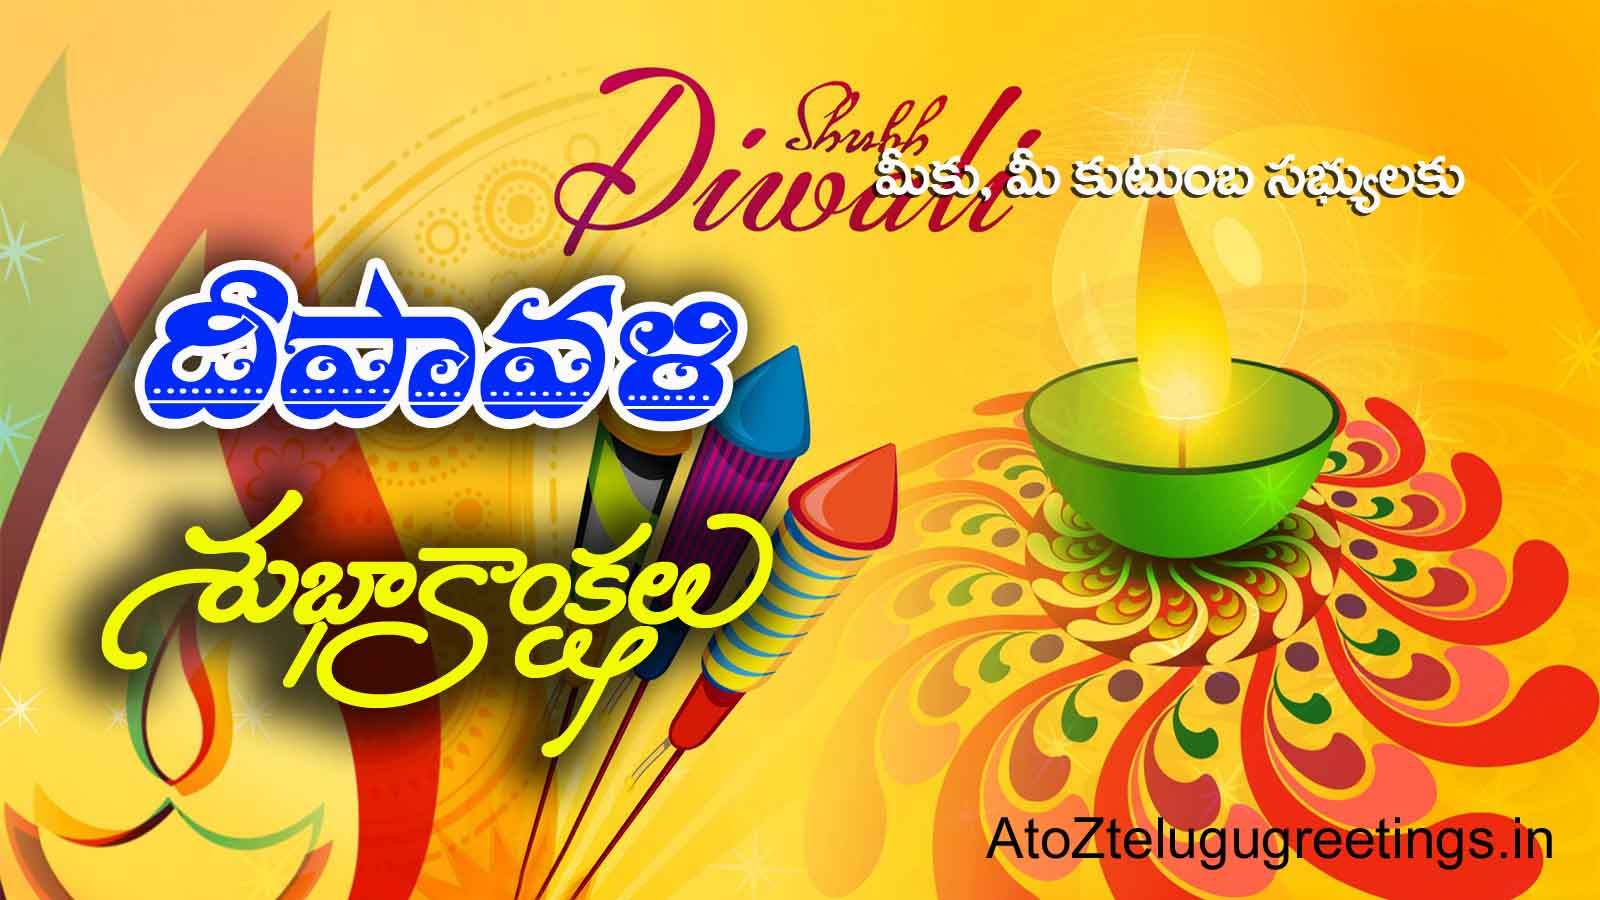 Deepavali telugu quotes and messages online greetings and pictures kristyandbryce Gallery